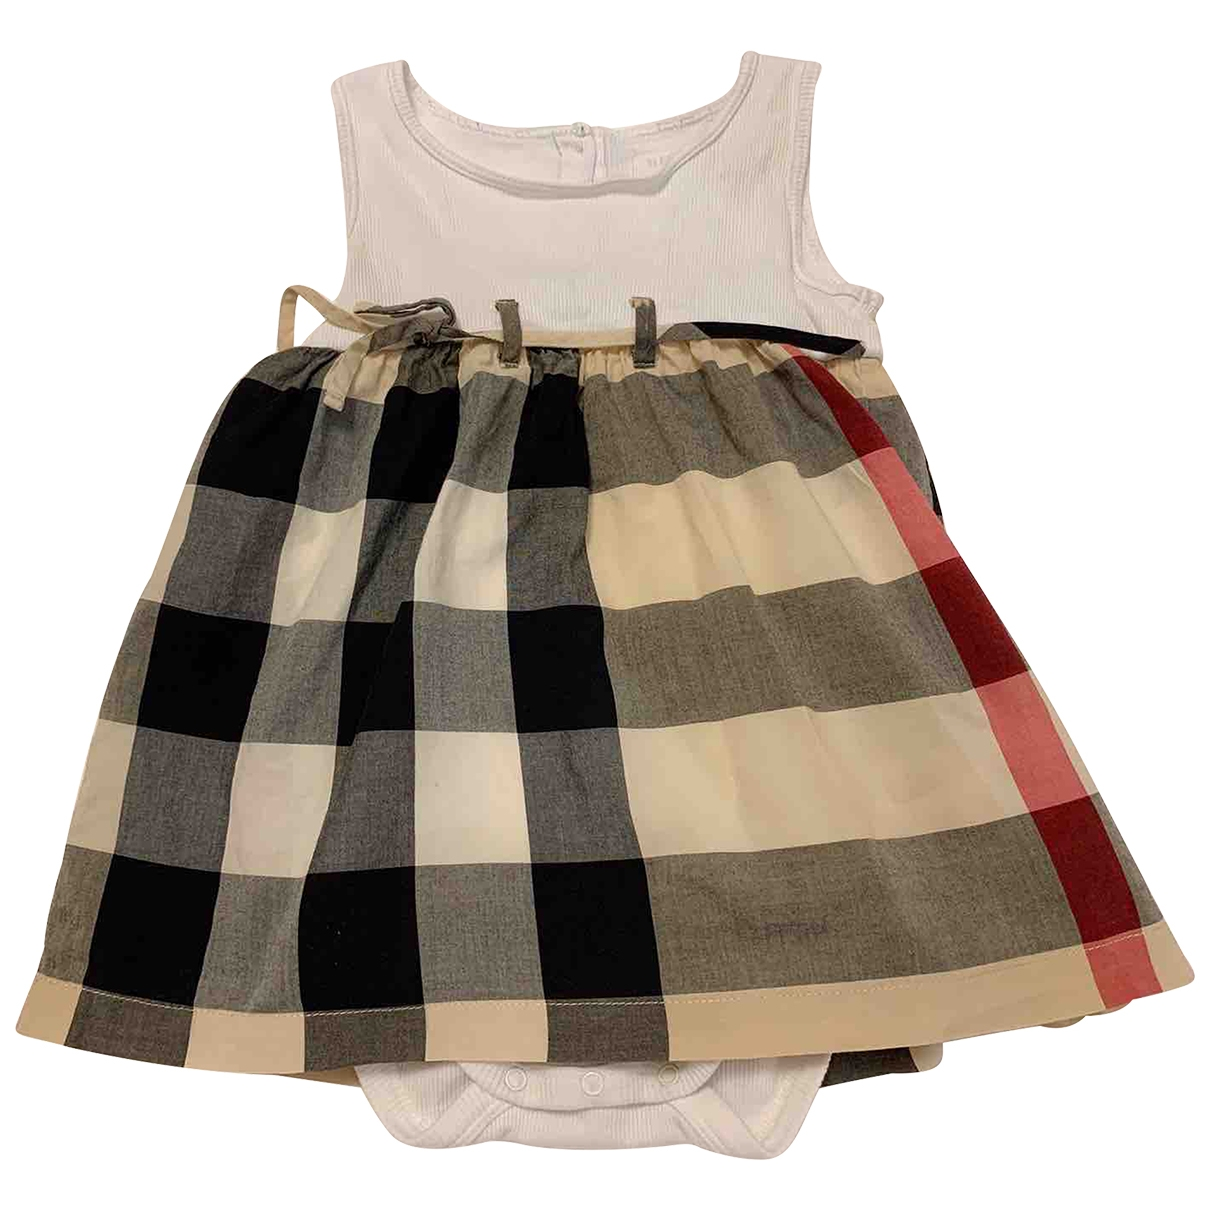 Burberry \N Multicolour Cotton - elasthane dress for Kids 12 months - until 29 inches UK